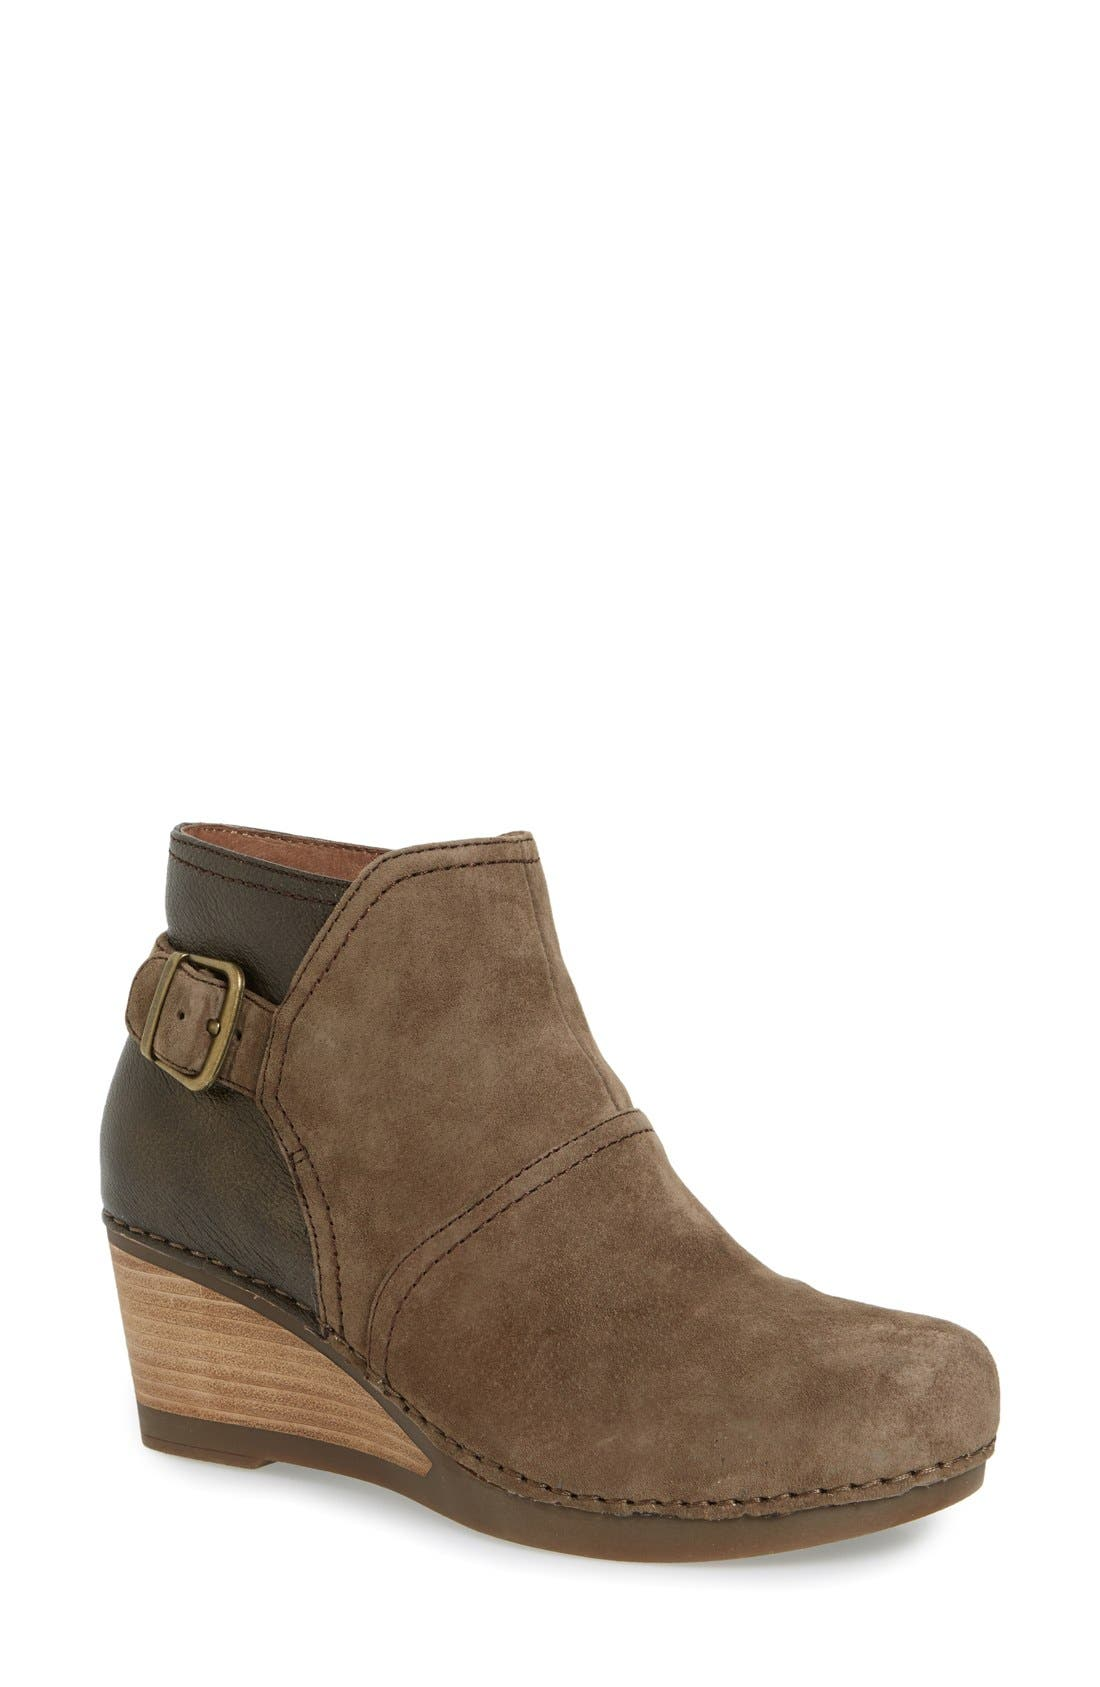 'Shirley' Wedge Bootie,                             Main thumbnail 4, color,